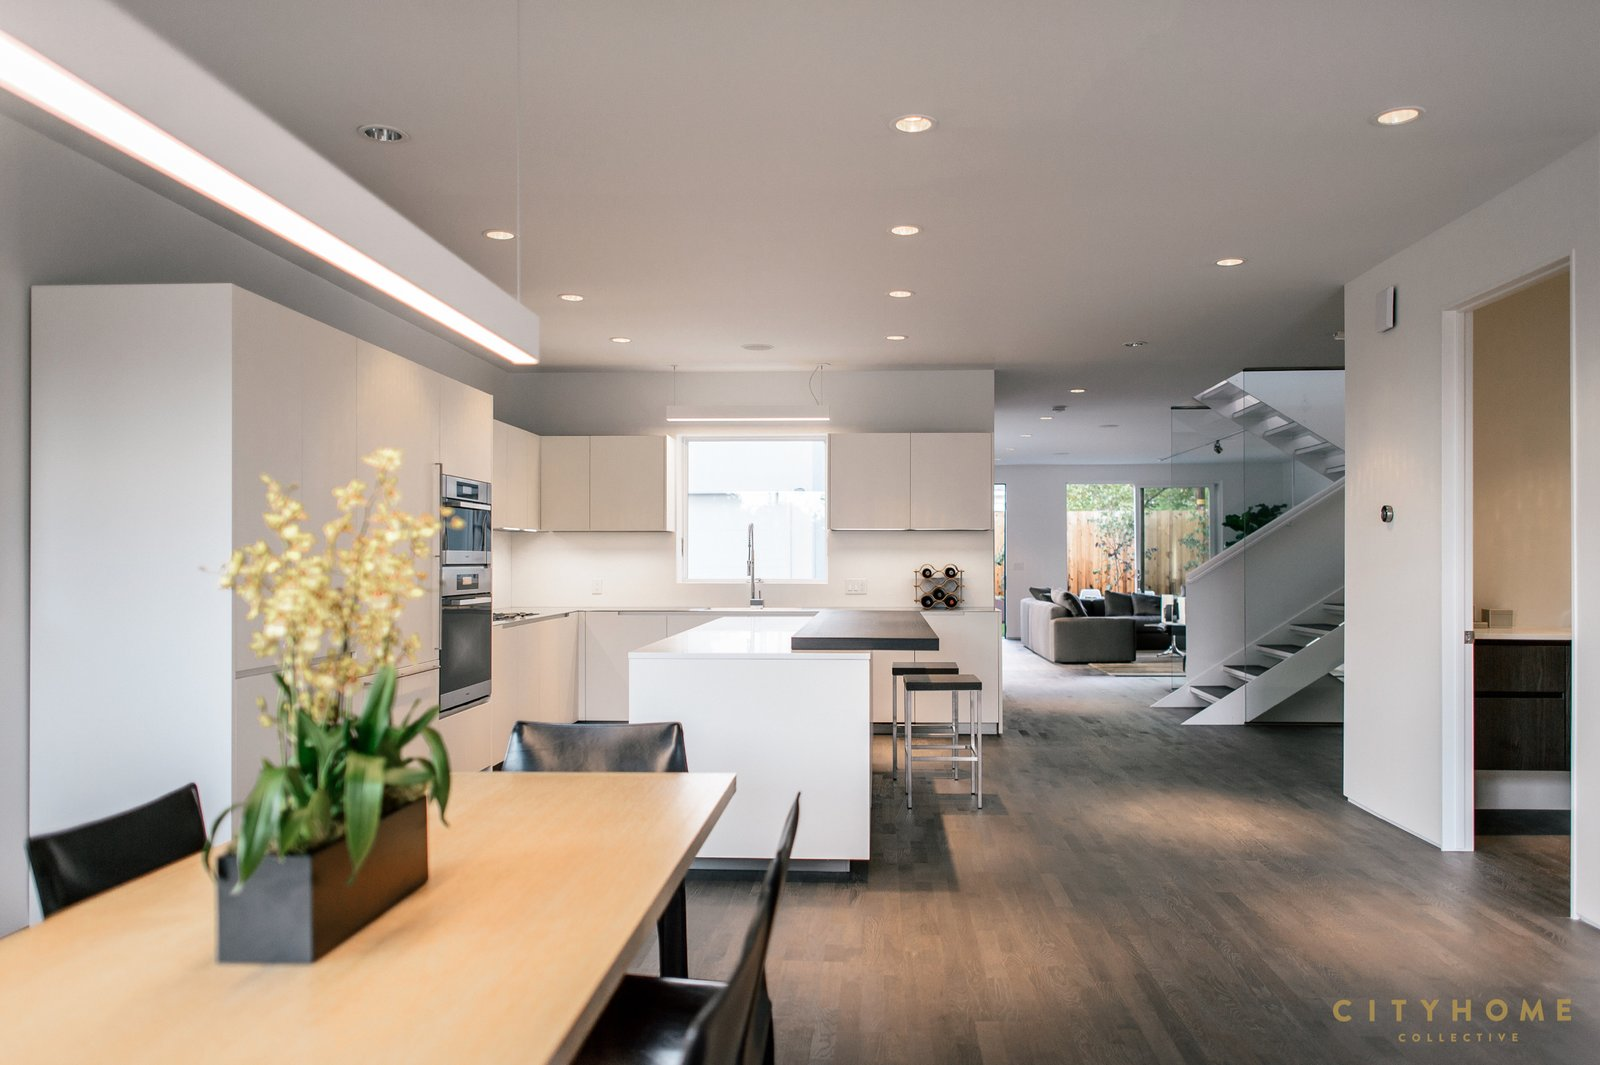 dining kitchen and beyond  Sugarhouse Studio by Brent  Jespersen